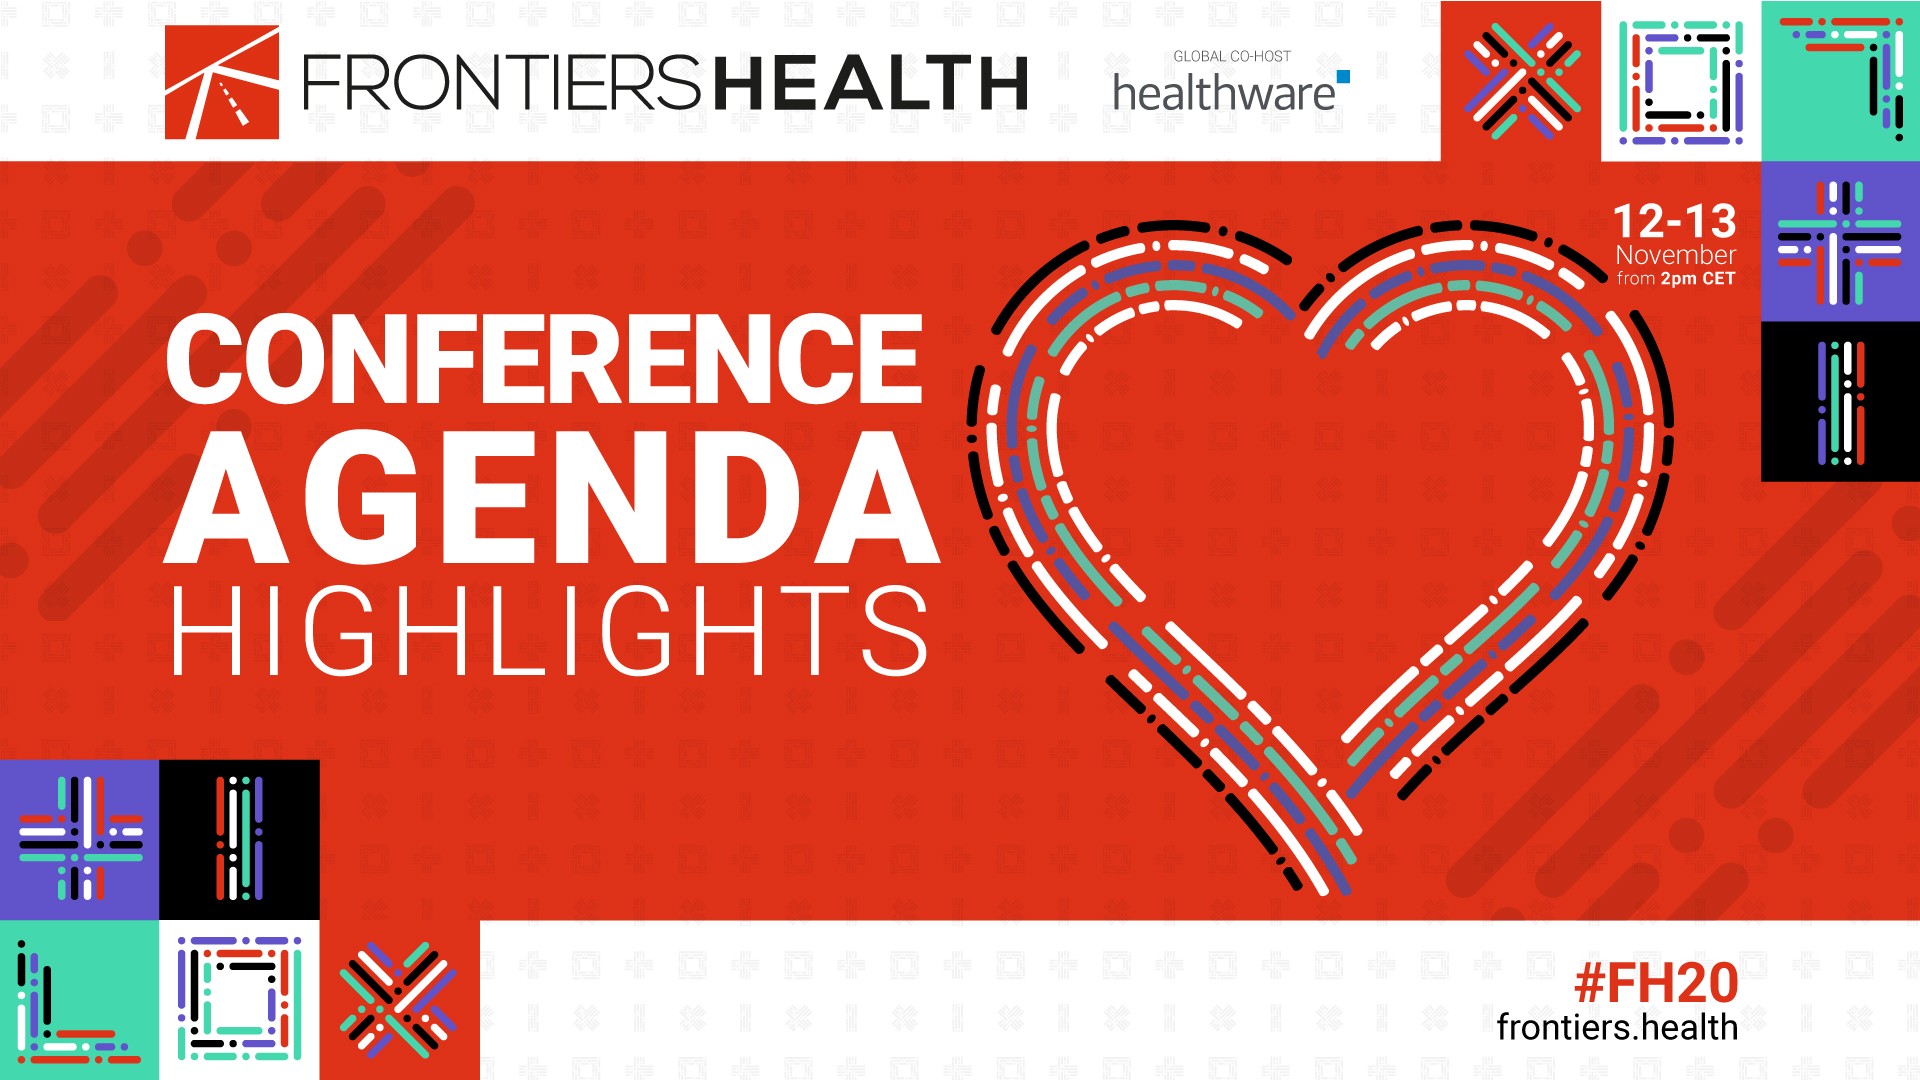 Everything you need for Frontiers Health 2020